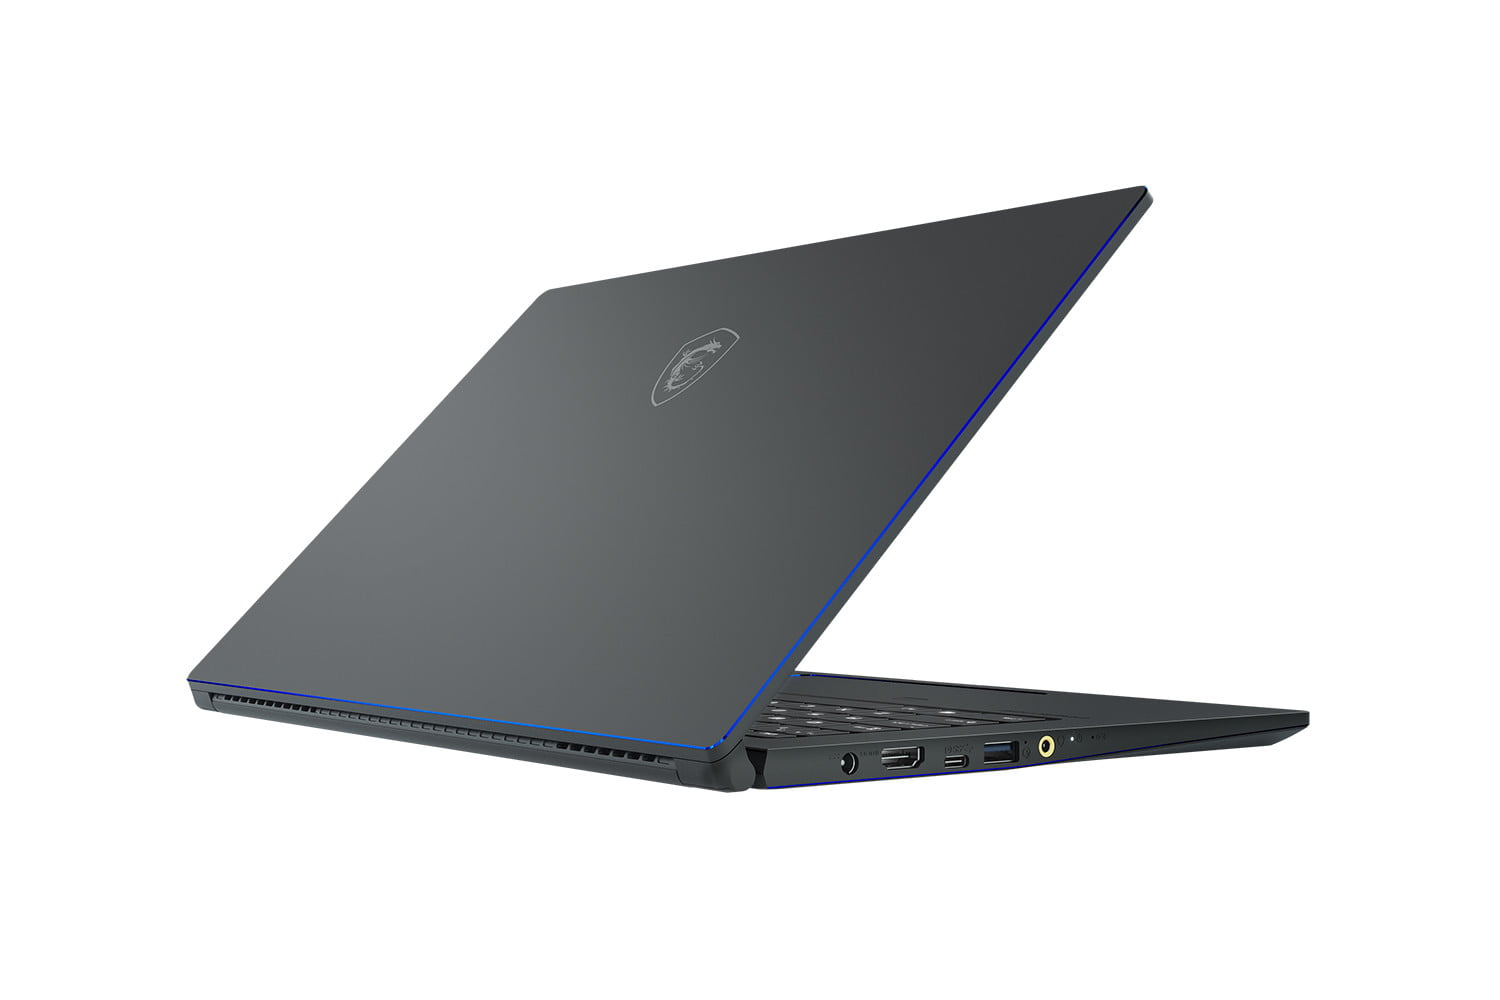 msi revamp gaming laptops rtx graphics ces 2019 nb ps63 modern photo05